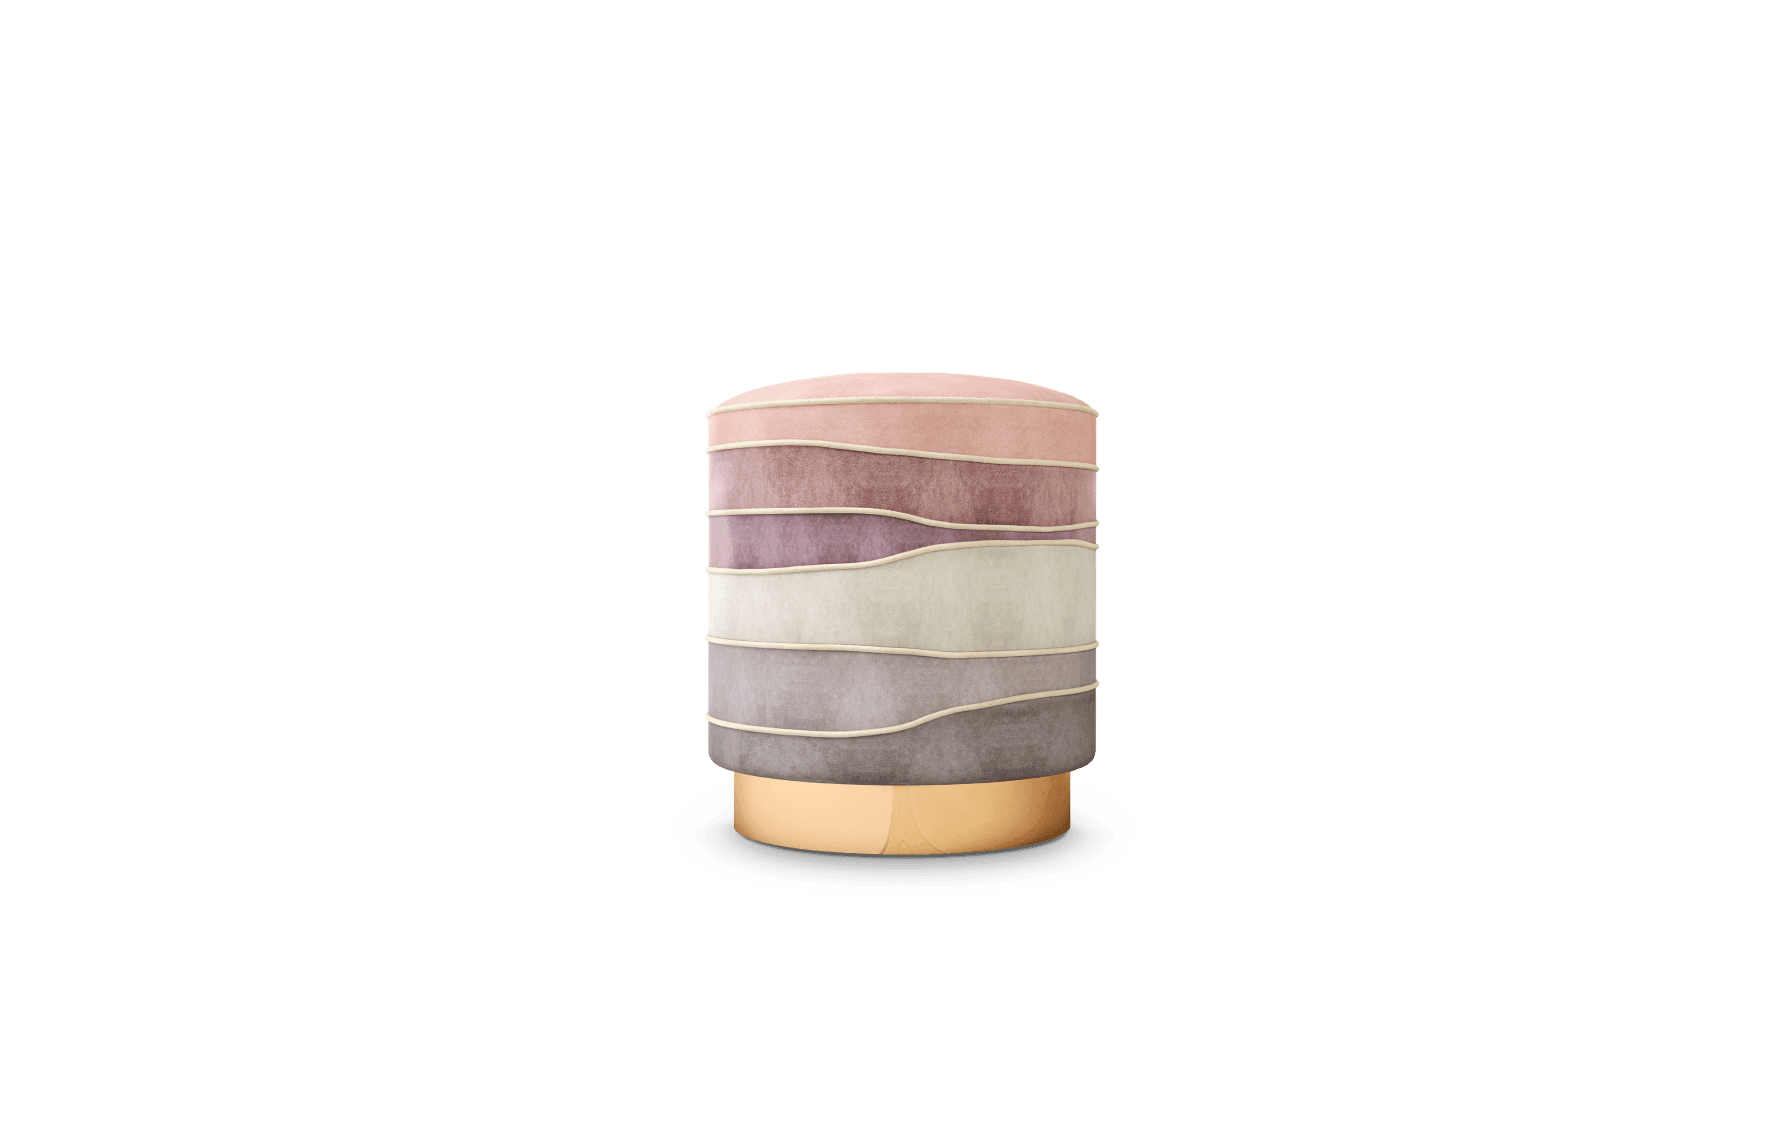 Charisse Mid-Century Modern Stool in pink, white and grey cotton velvet